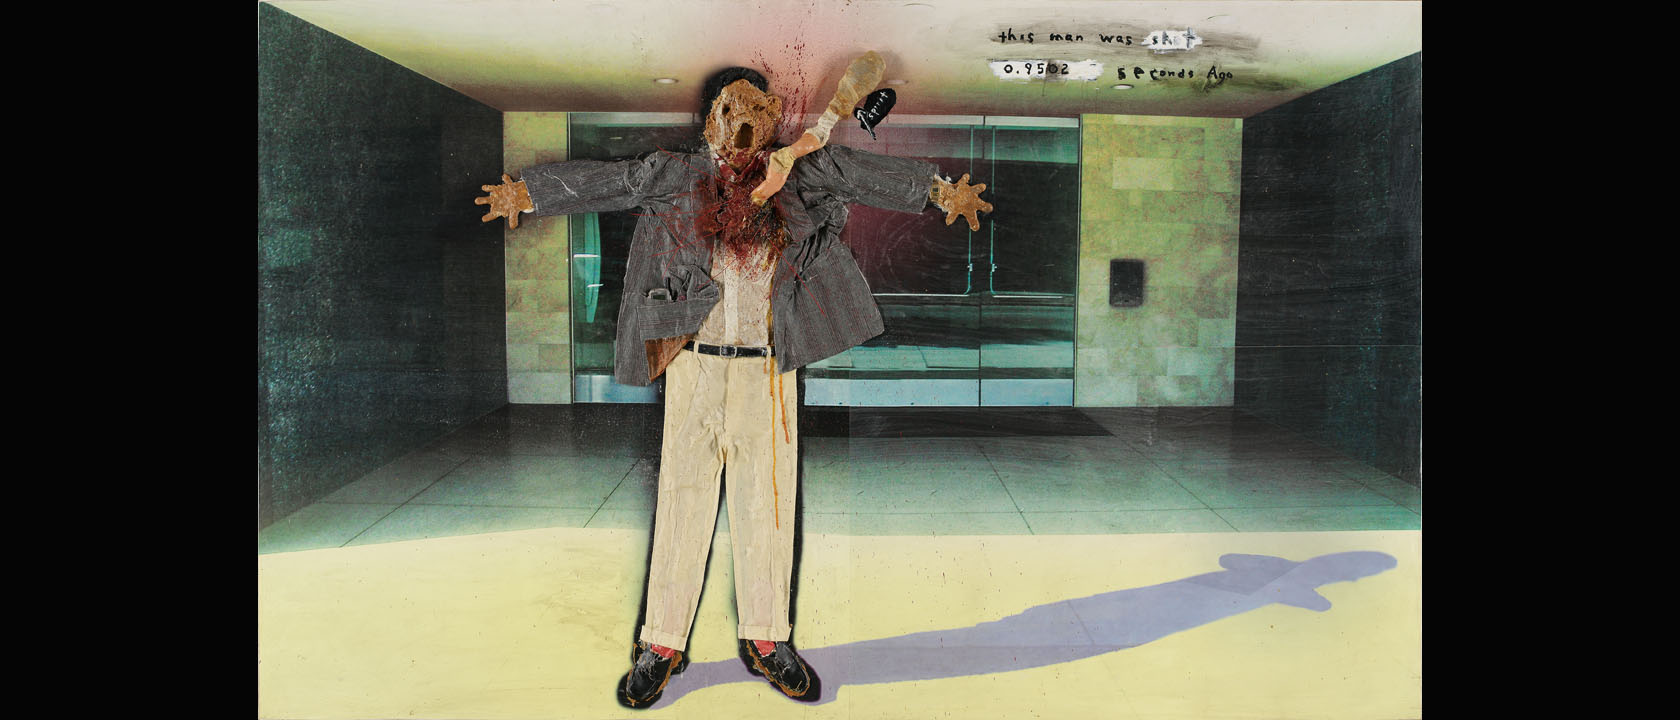 David-Lynch-This-Man-Was-Shot-0.9502-Seconds-Ago-2004-mixed-media-on-panel-courtesy-the-artist-slide-1